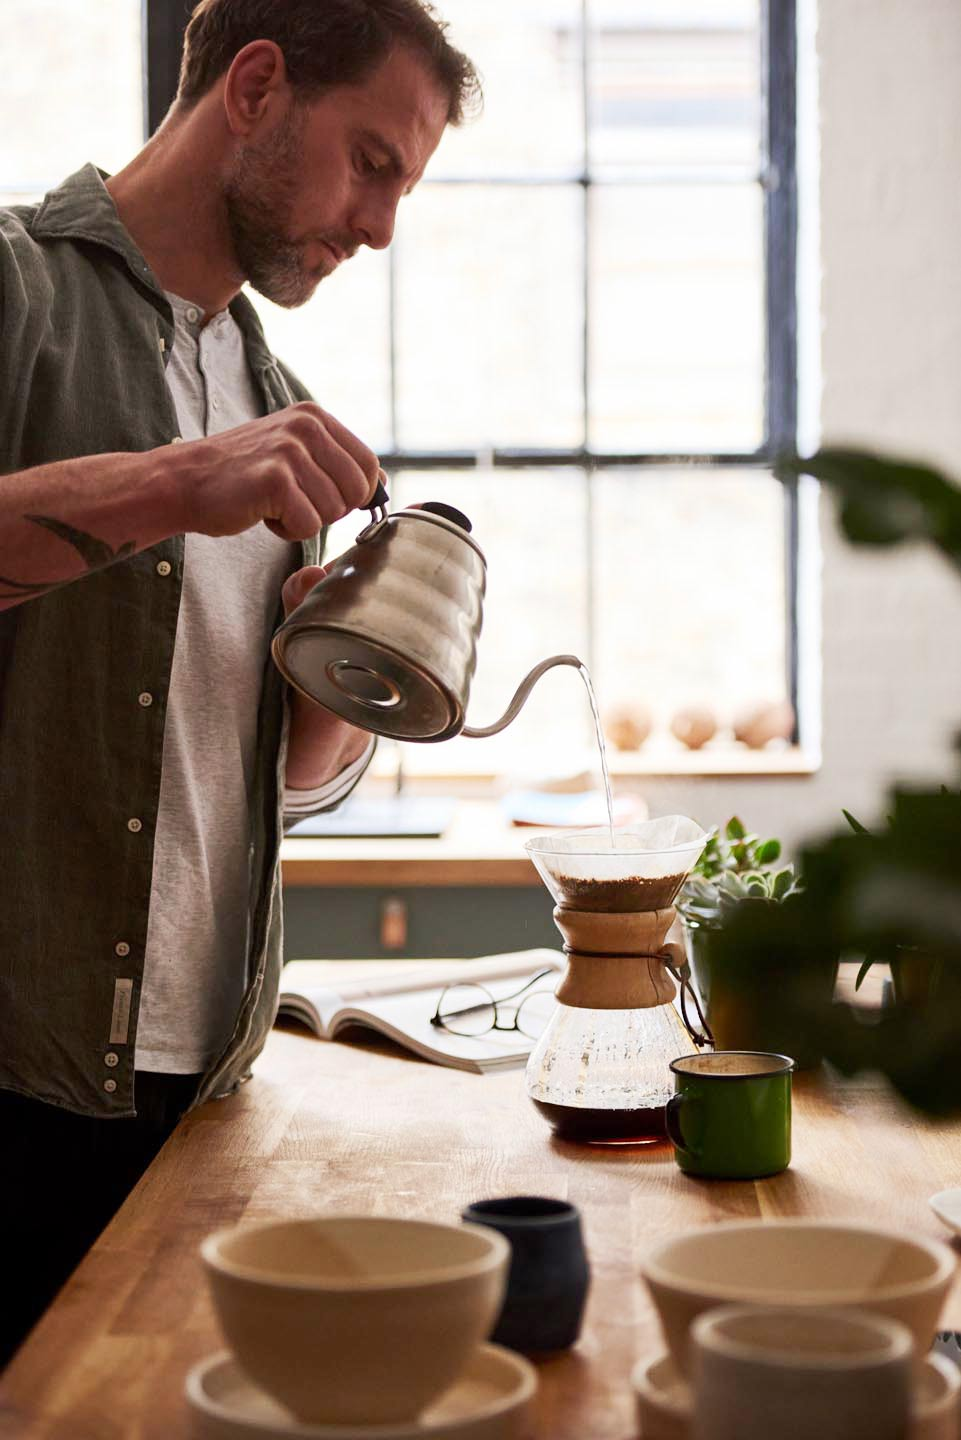 Relish Integrated Del Manning lifestyle photography brand photography man pour over coffee